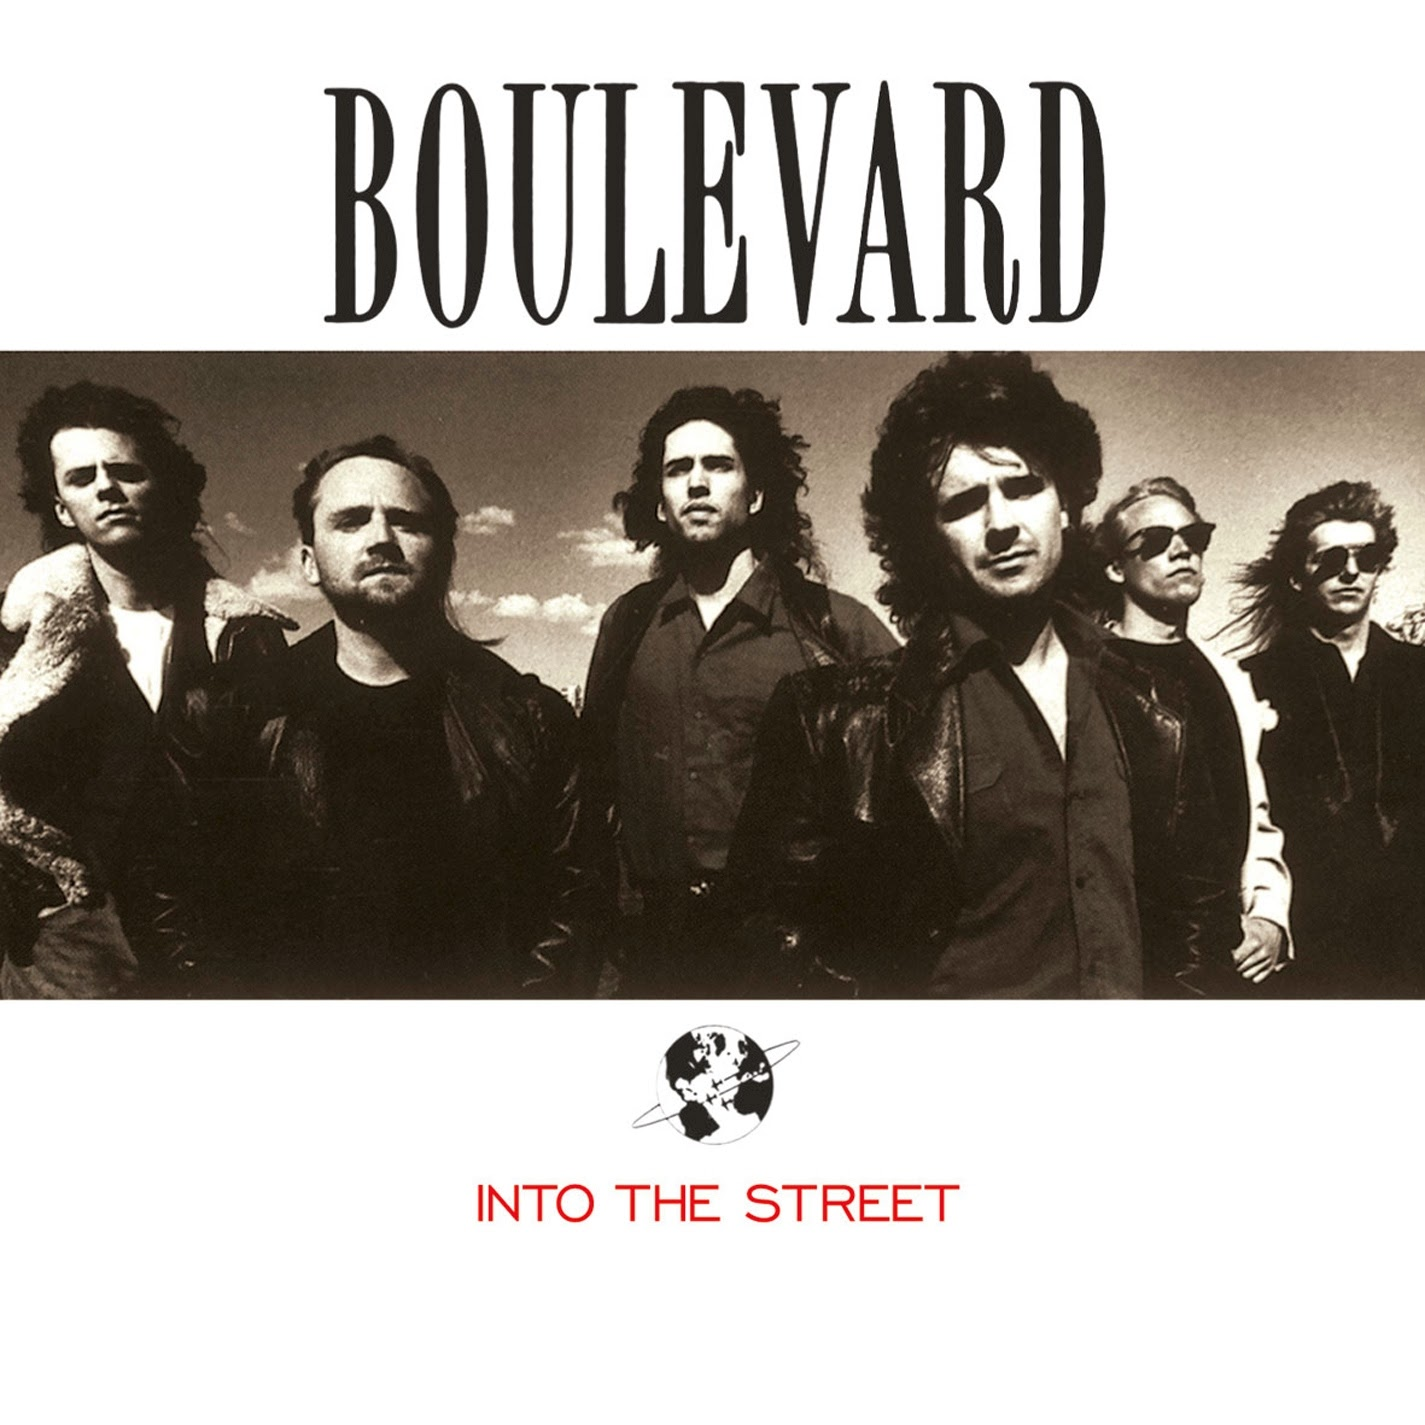 Boulevard Into the street 1990 aor melodic rock music blogspot bands albums